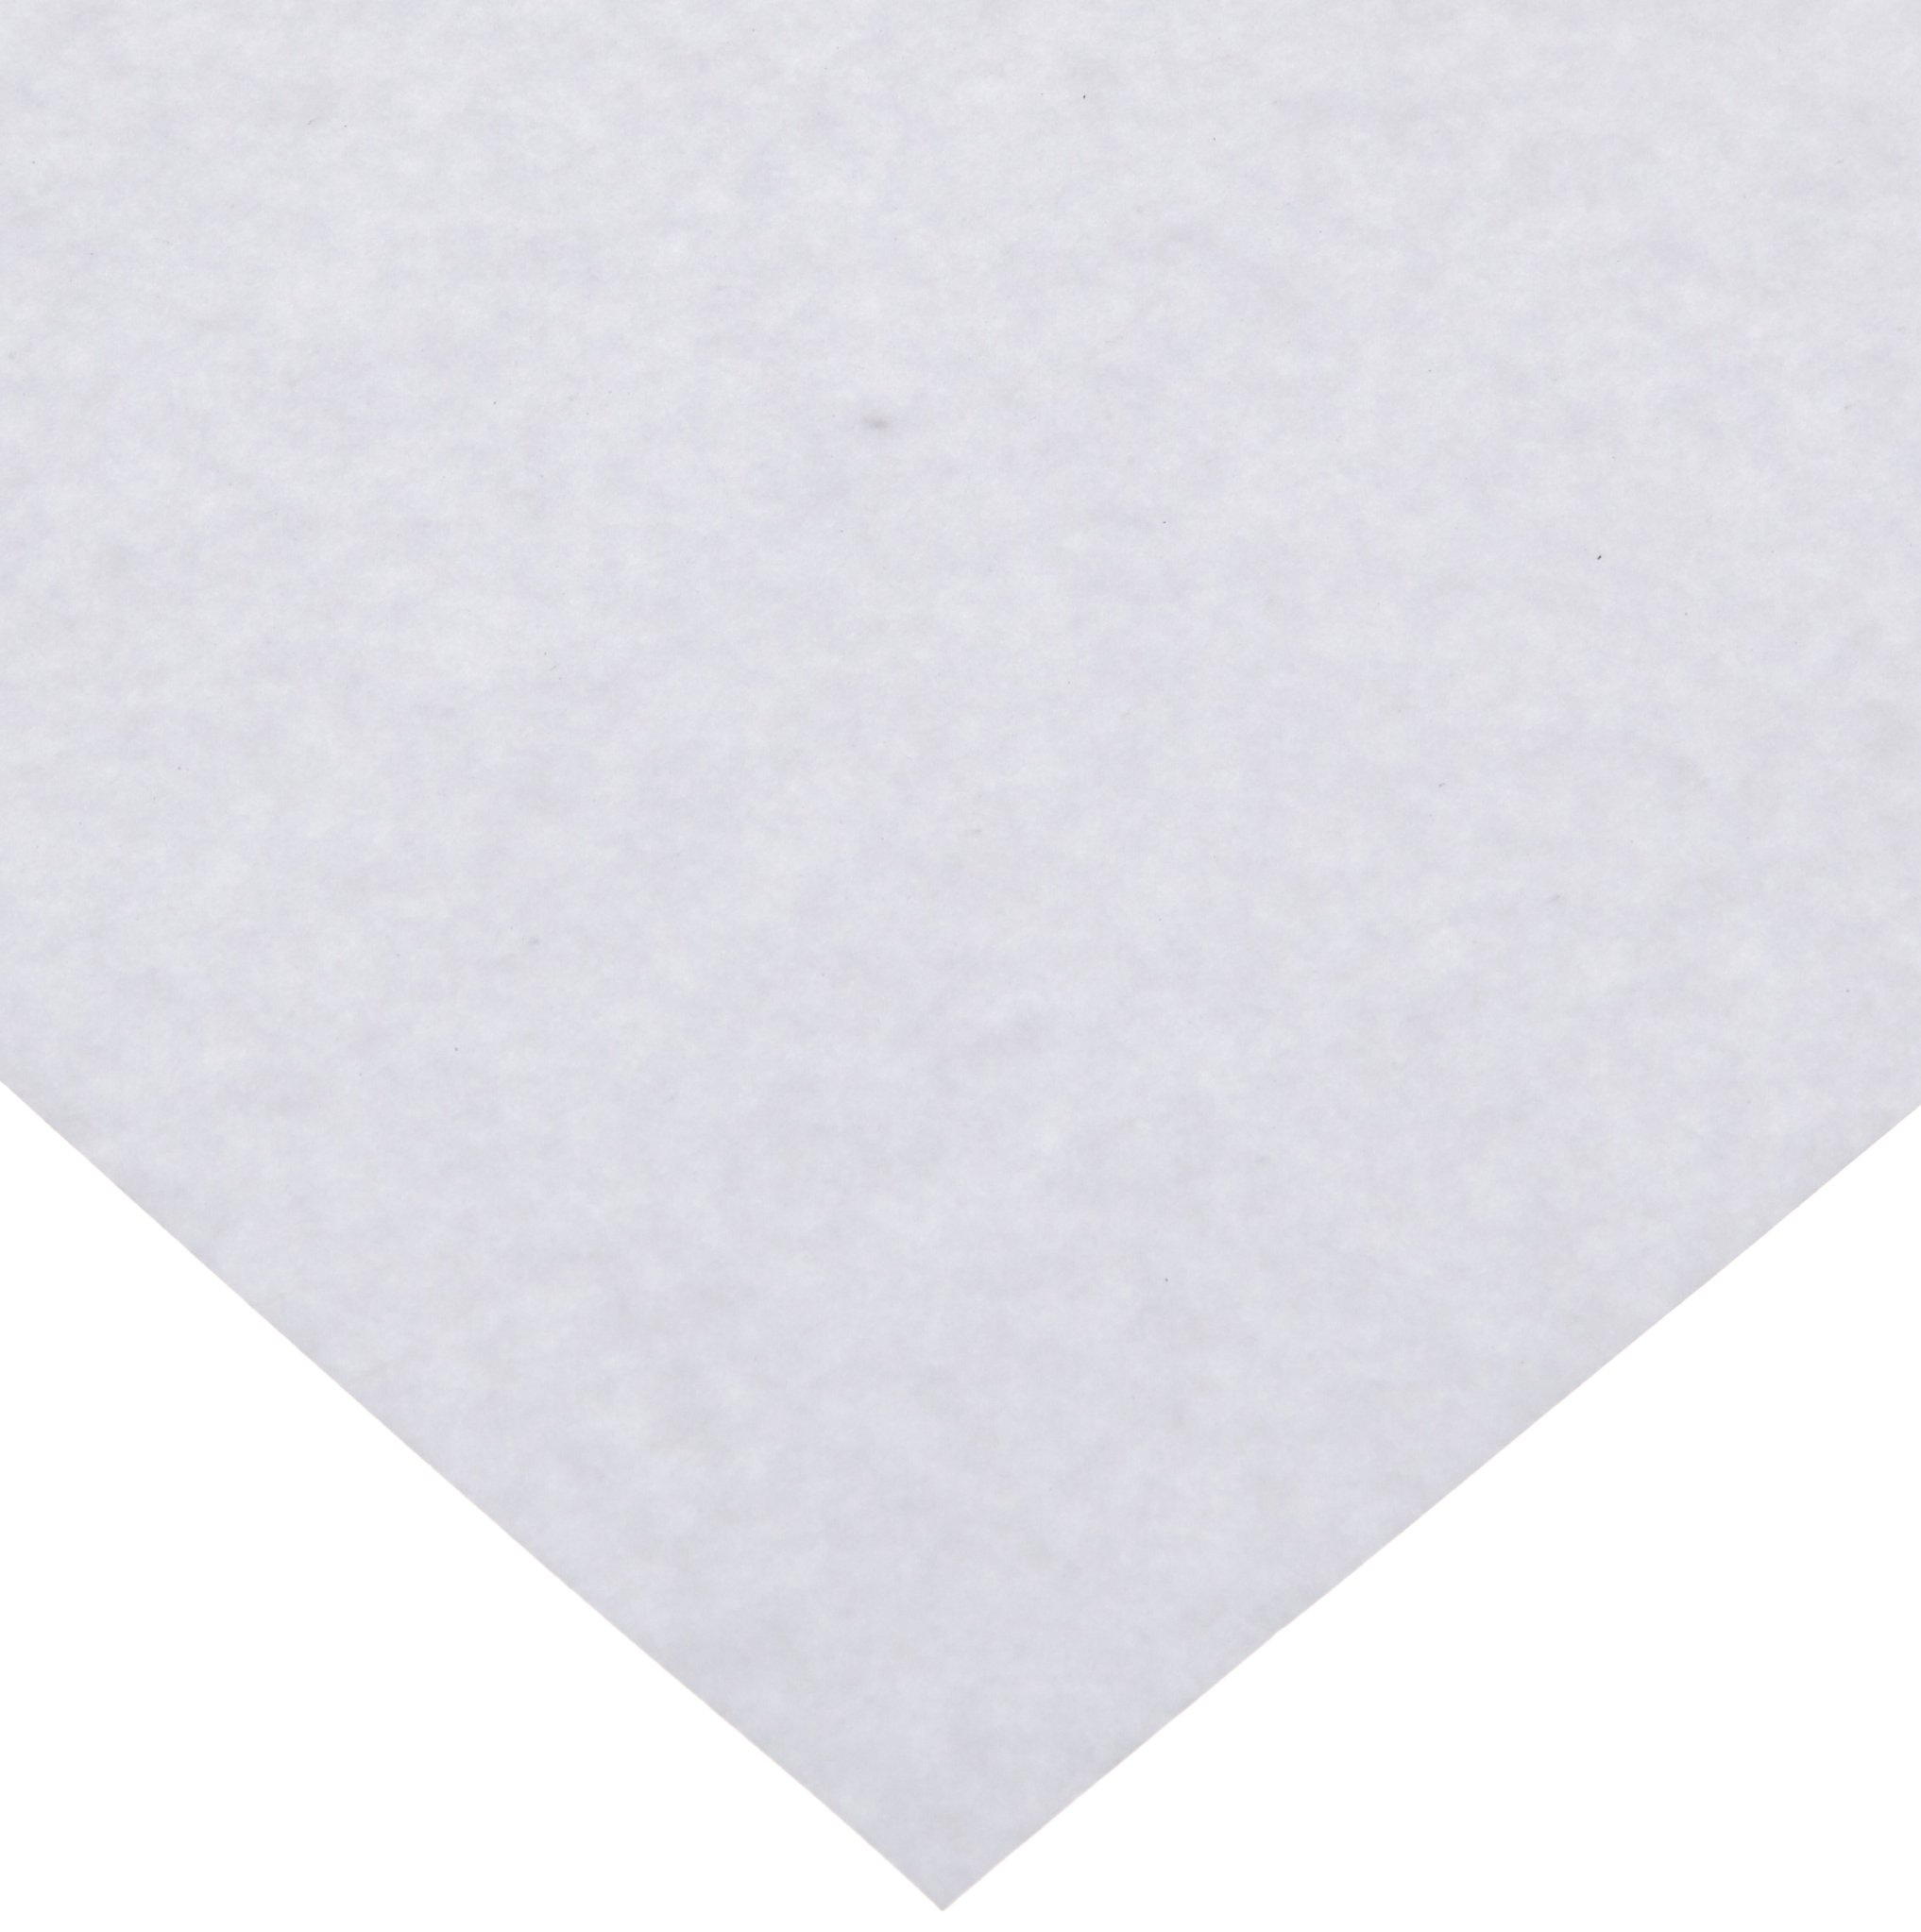 Sax Sulphite Drawing Paper, 60 lb, 12 x 18 Inches, Extra-White, Pack of 500 - 053934 by Sax